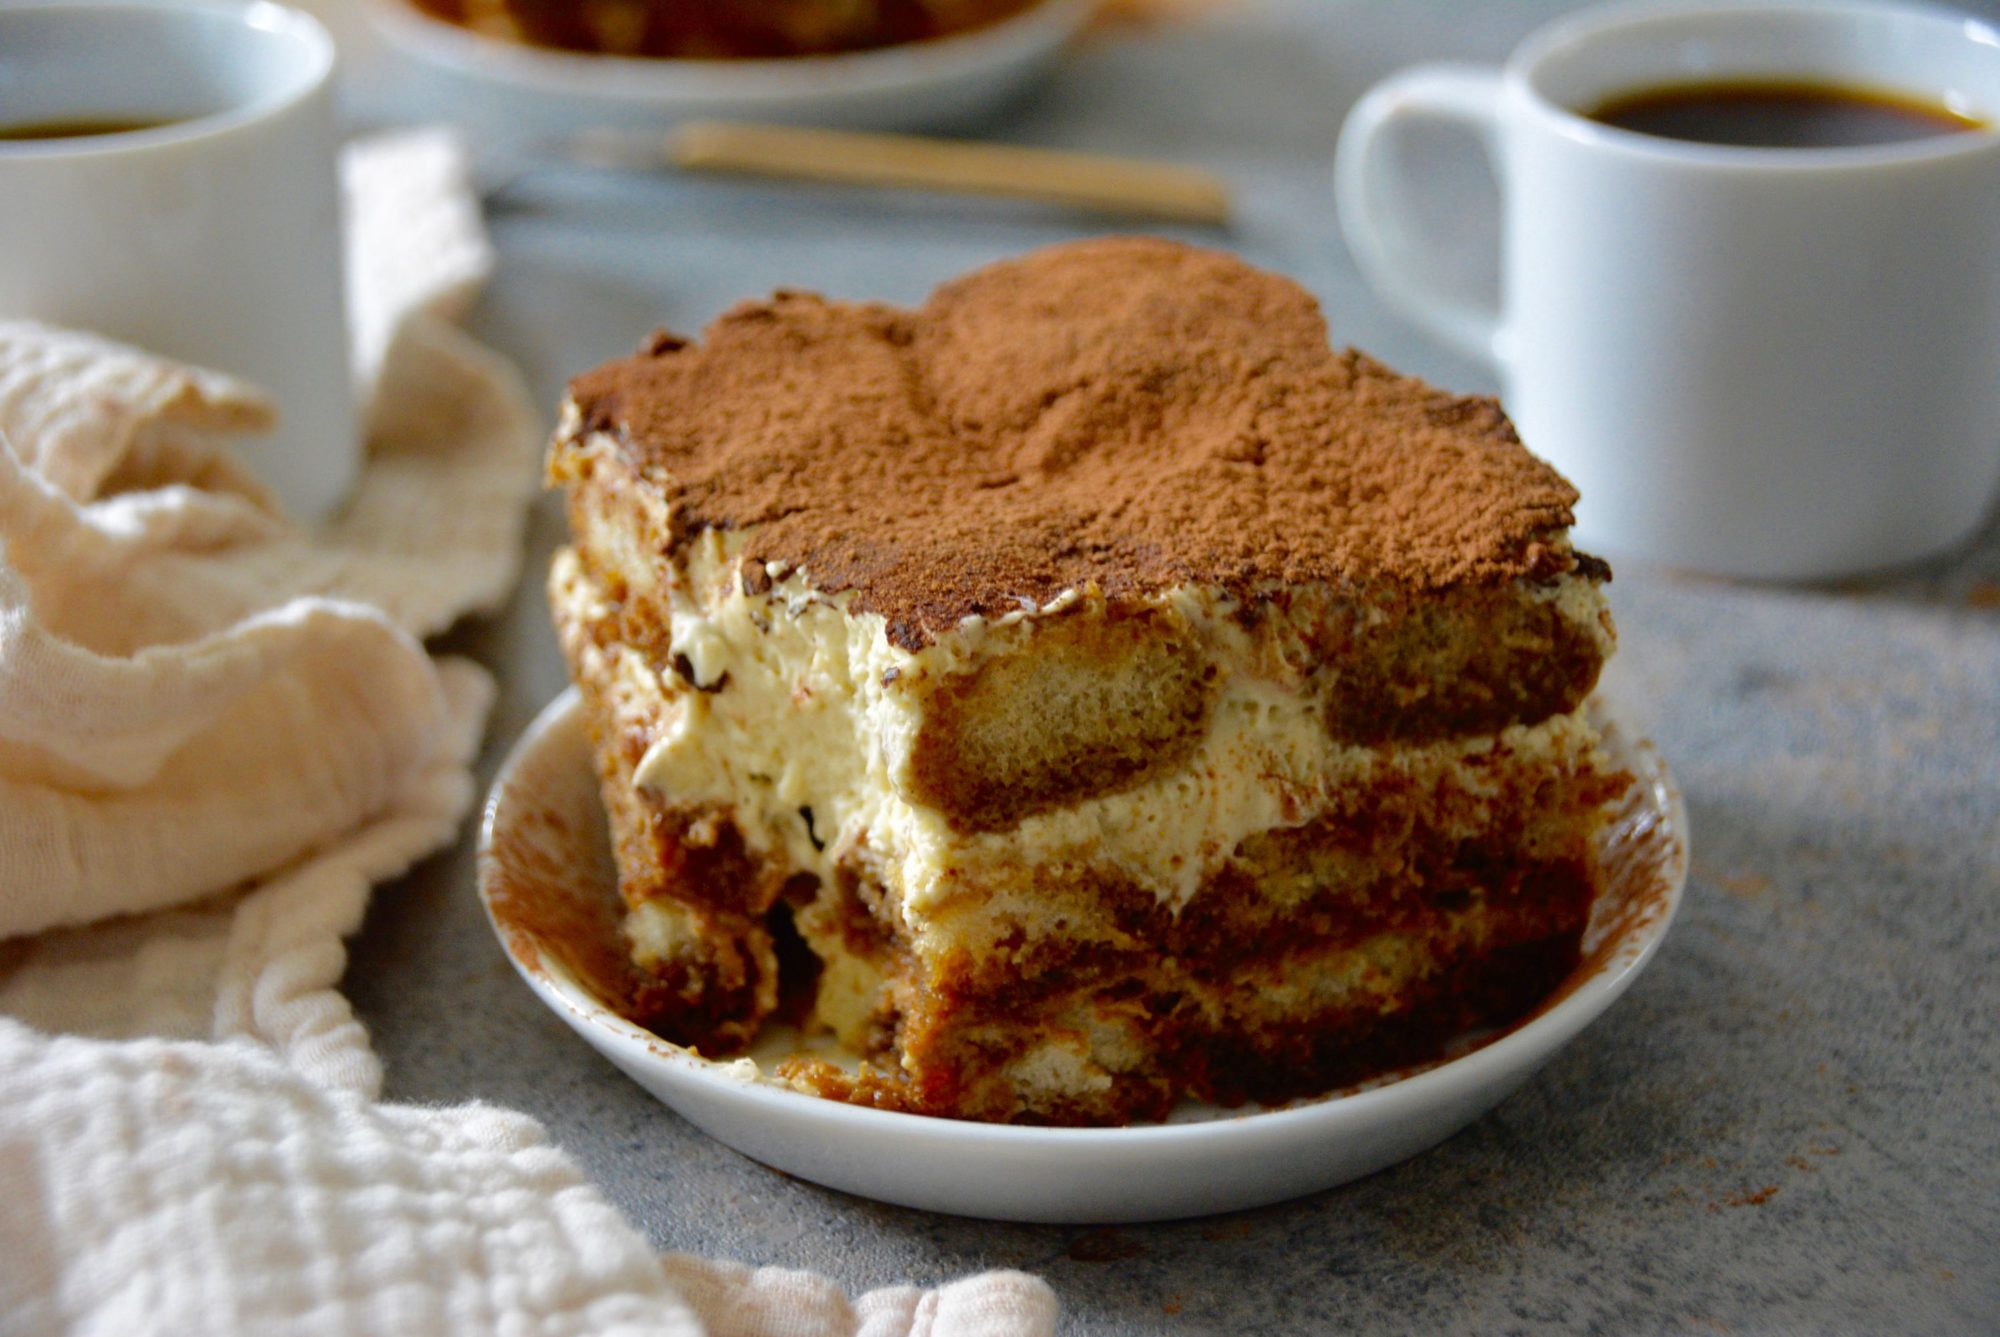 tiramisu on a plate with coffee cups in background